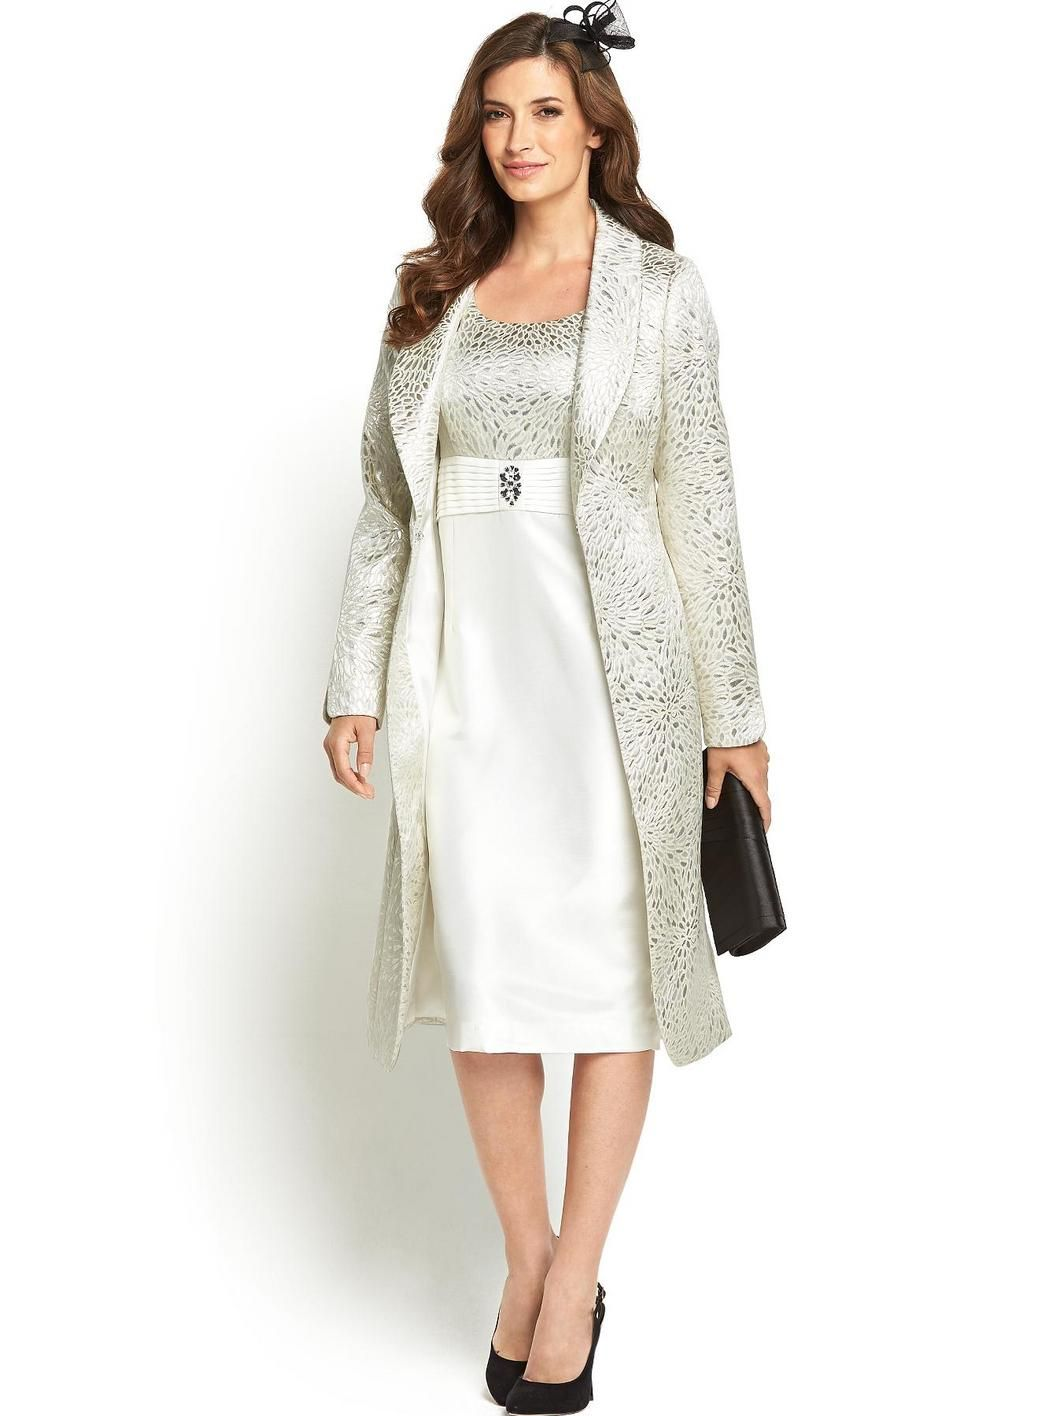 Jacquard Dress and Coat Suit http://www.isme.com/berkertex